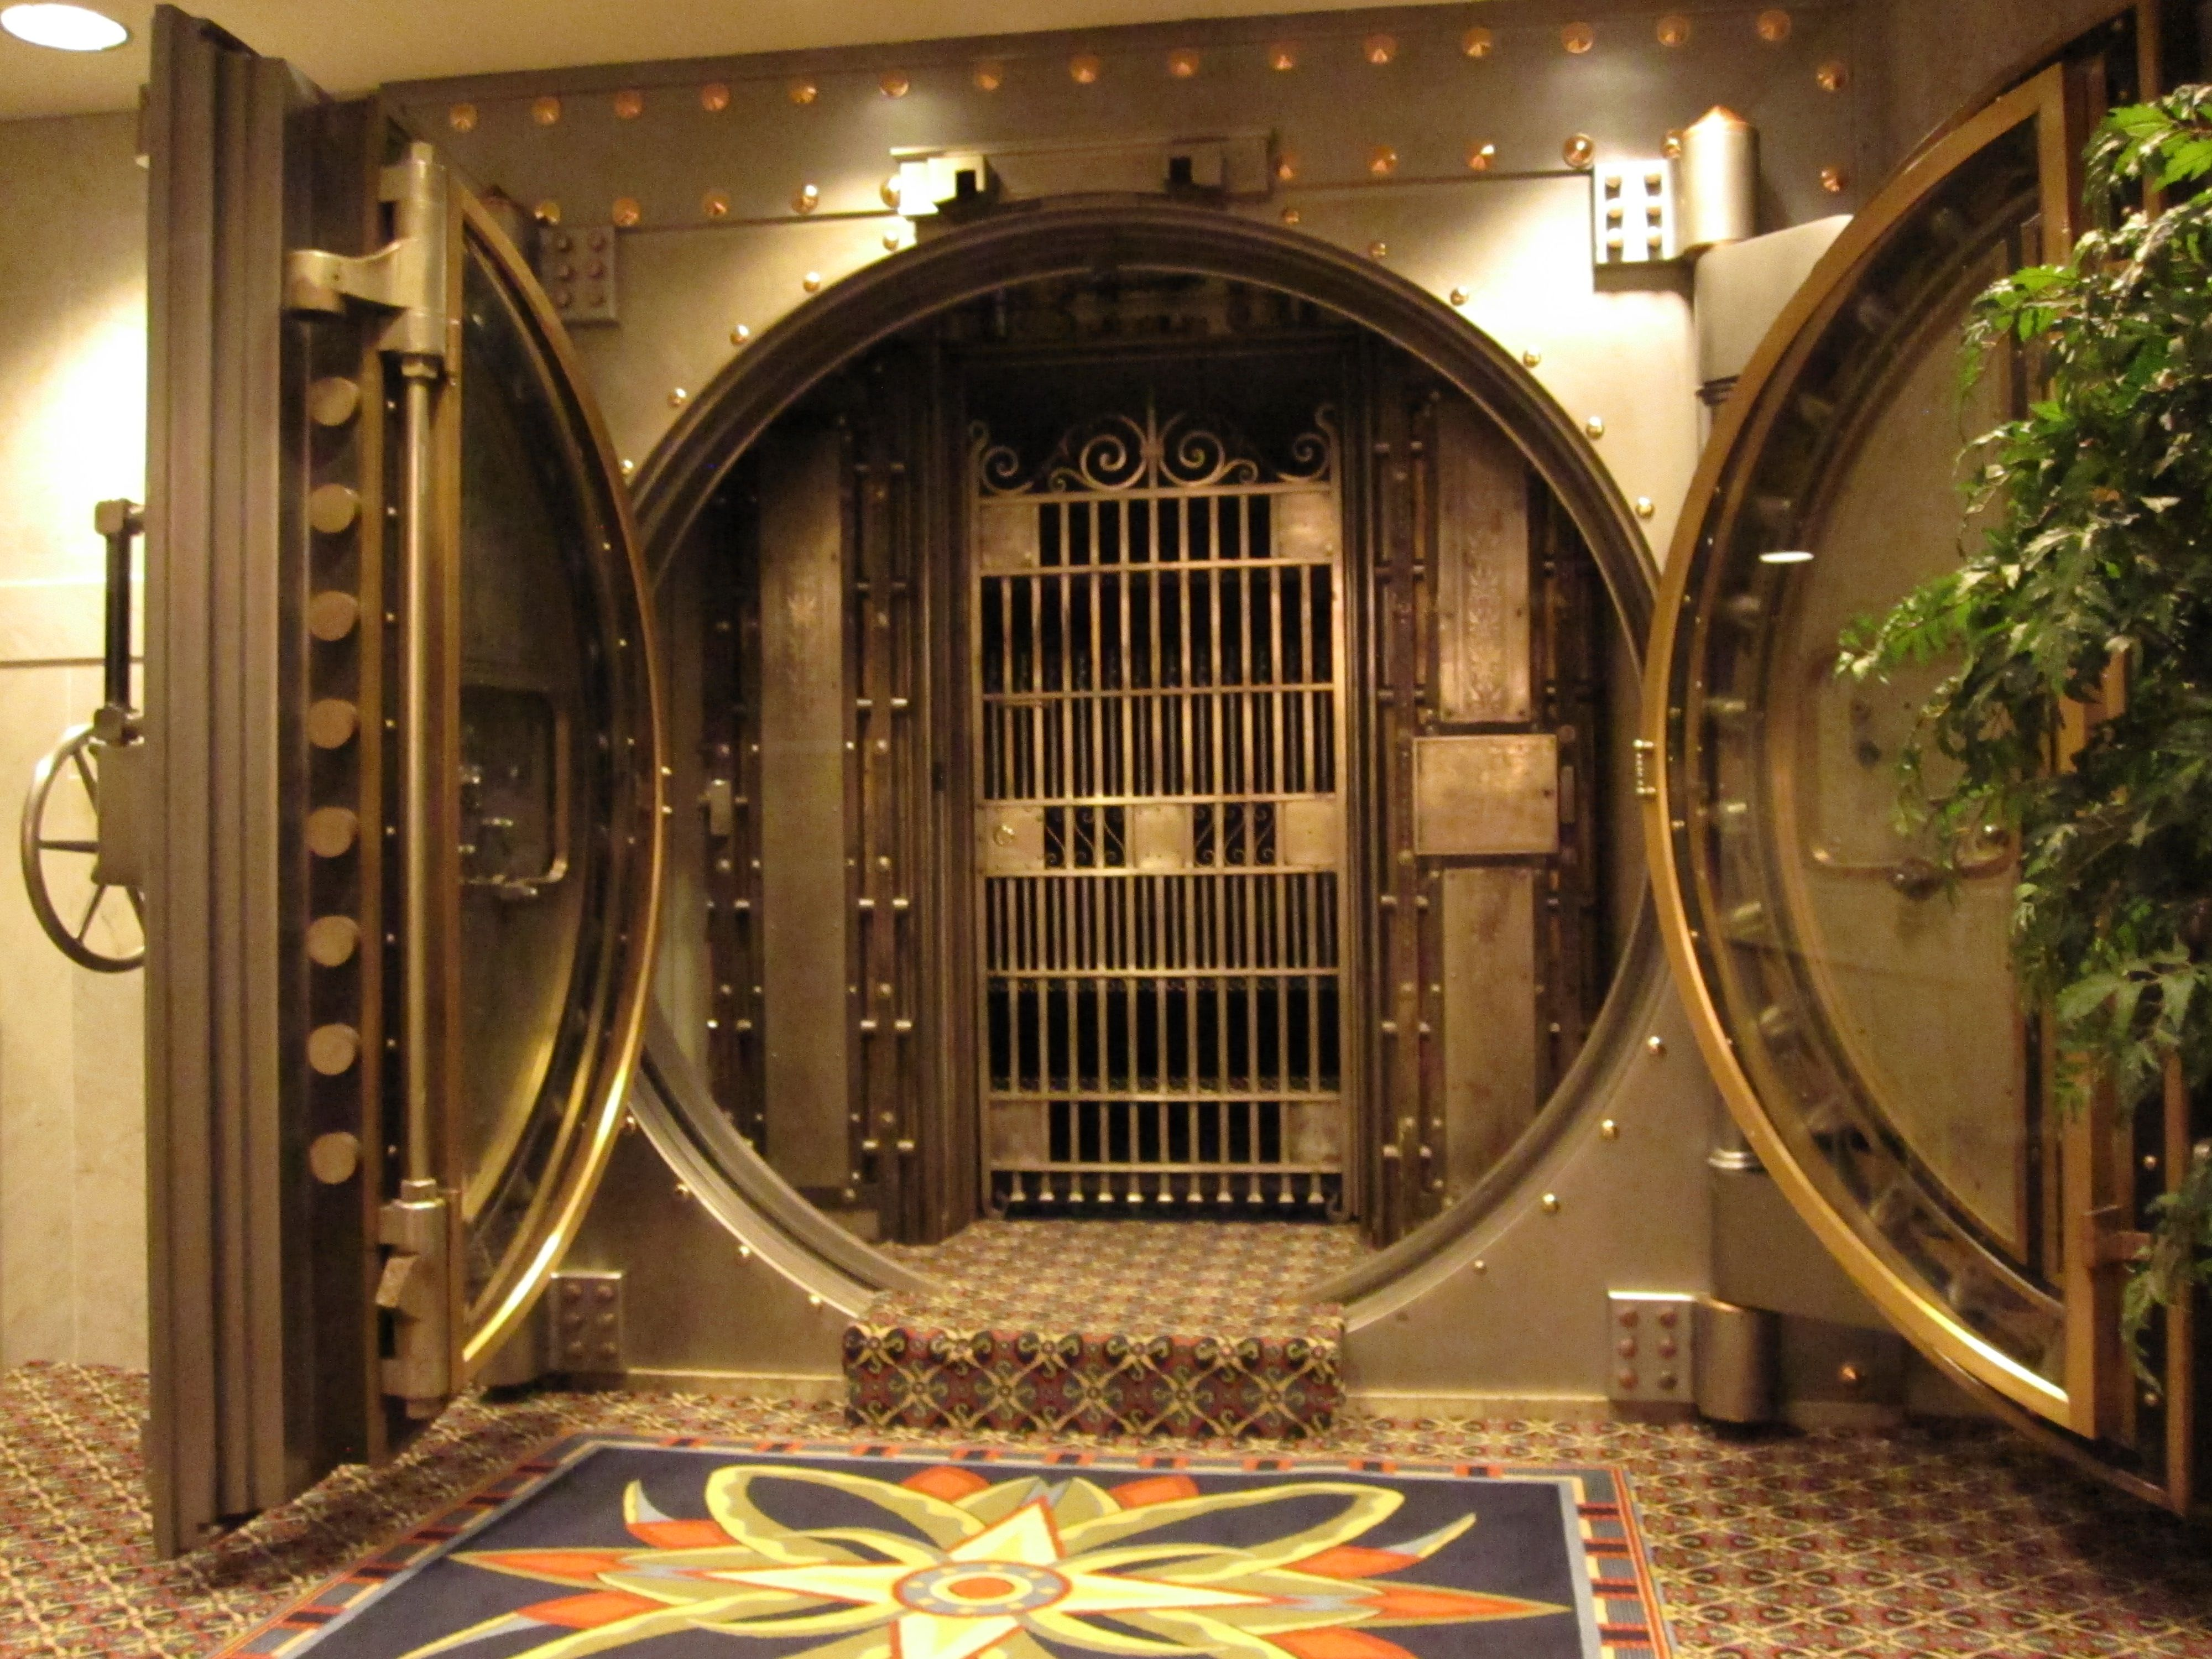 Le Meilleur Bank Vault Bank Vault Security Pinterest Banks Ce Mois Ci